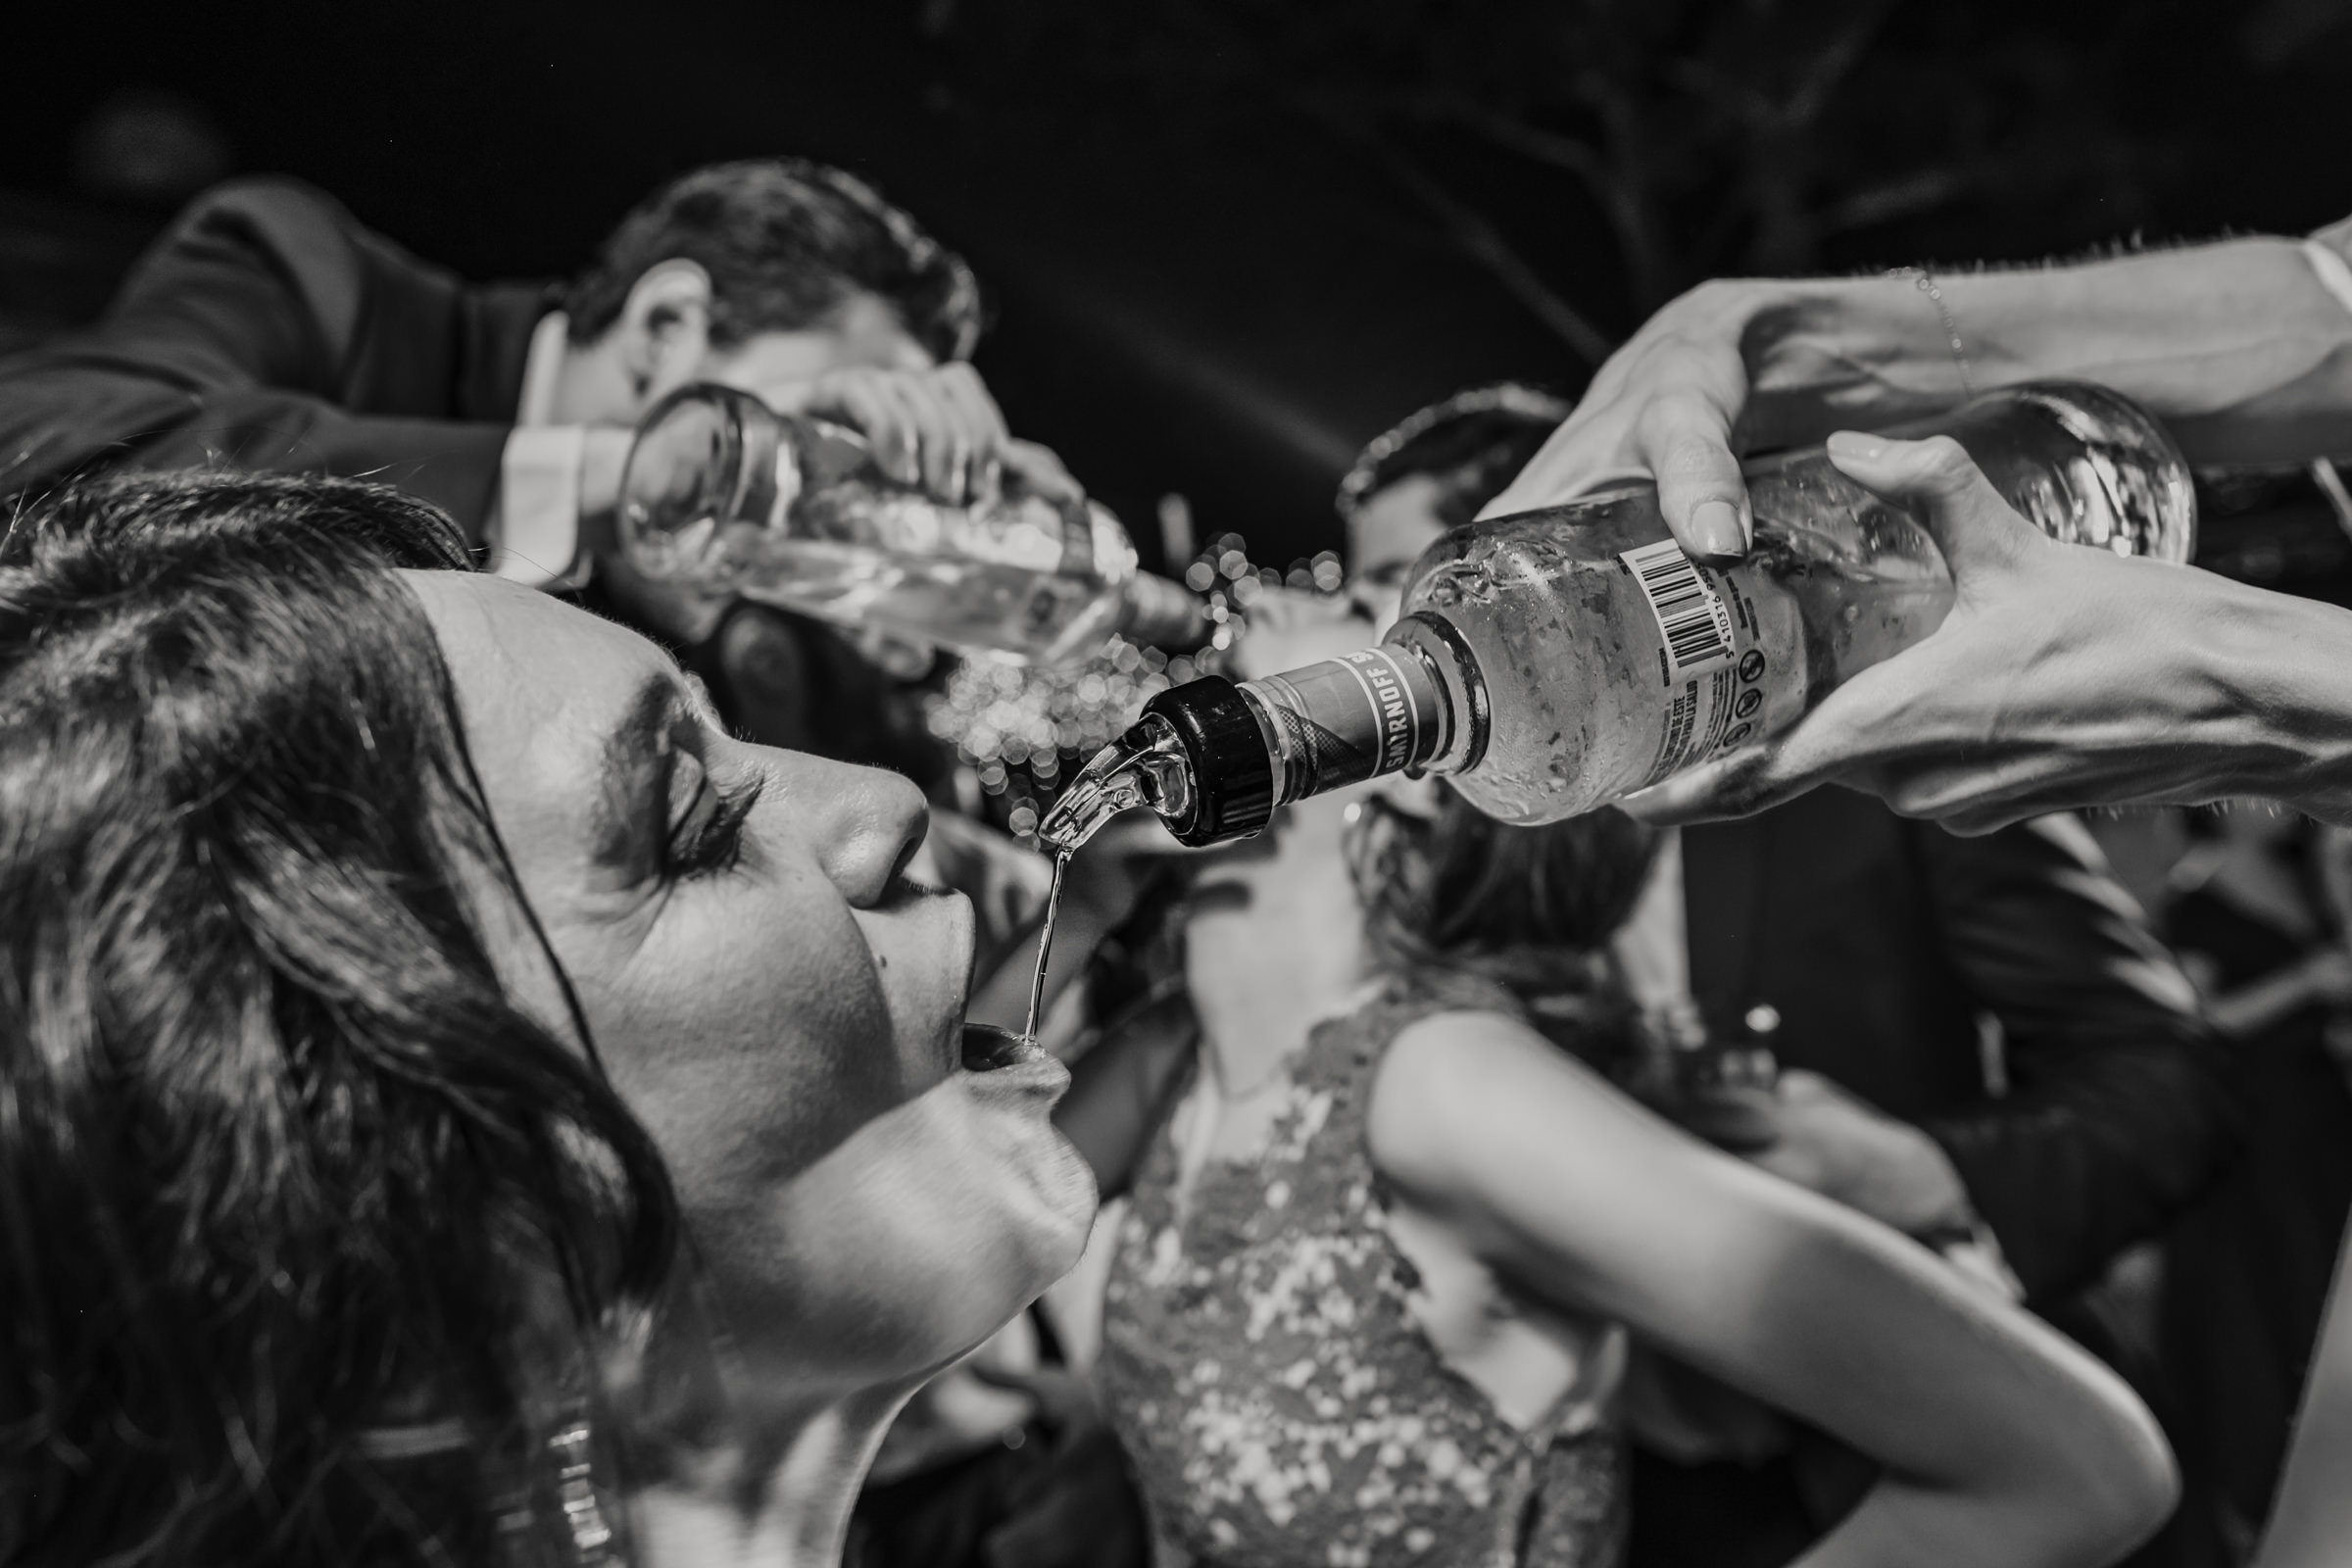 Vodka straight from the bottle - photo by El Marco Rojo